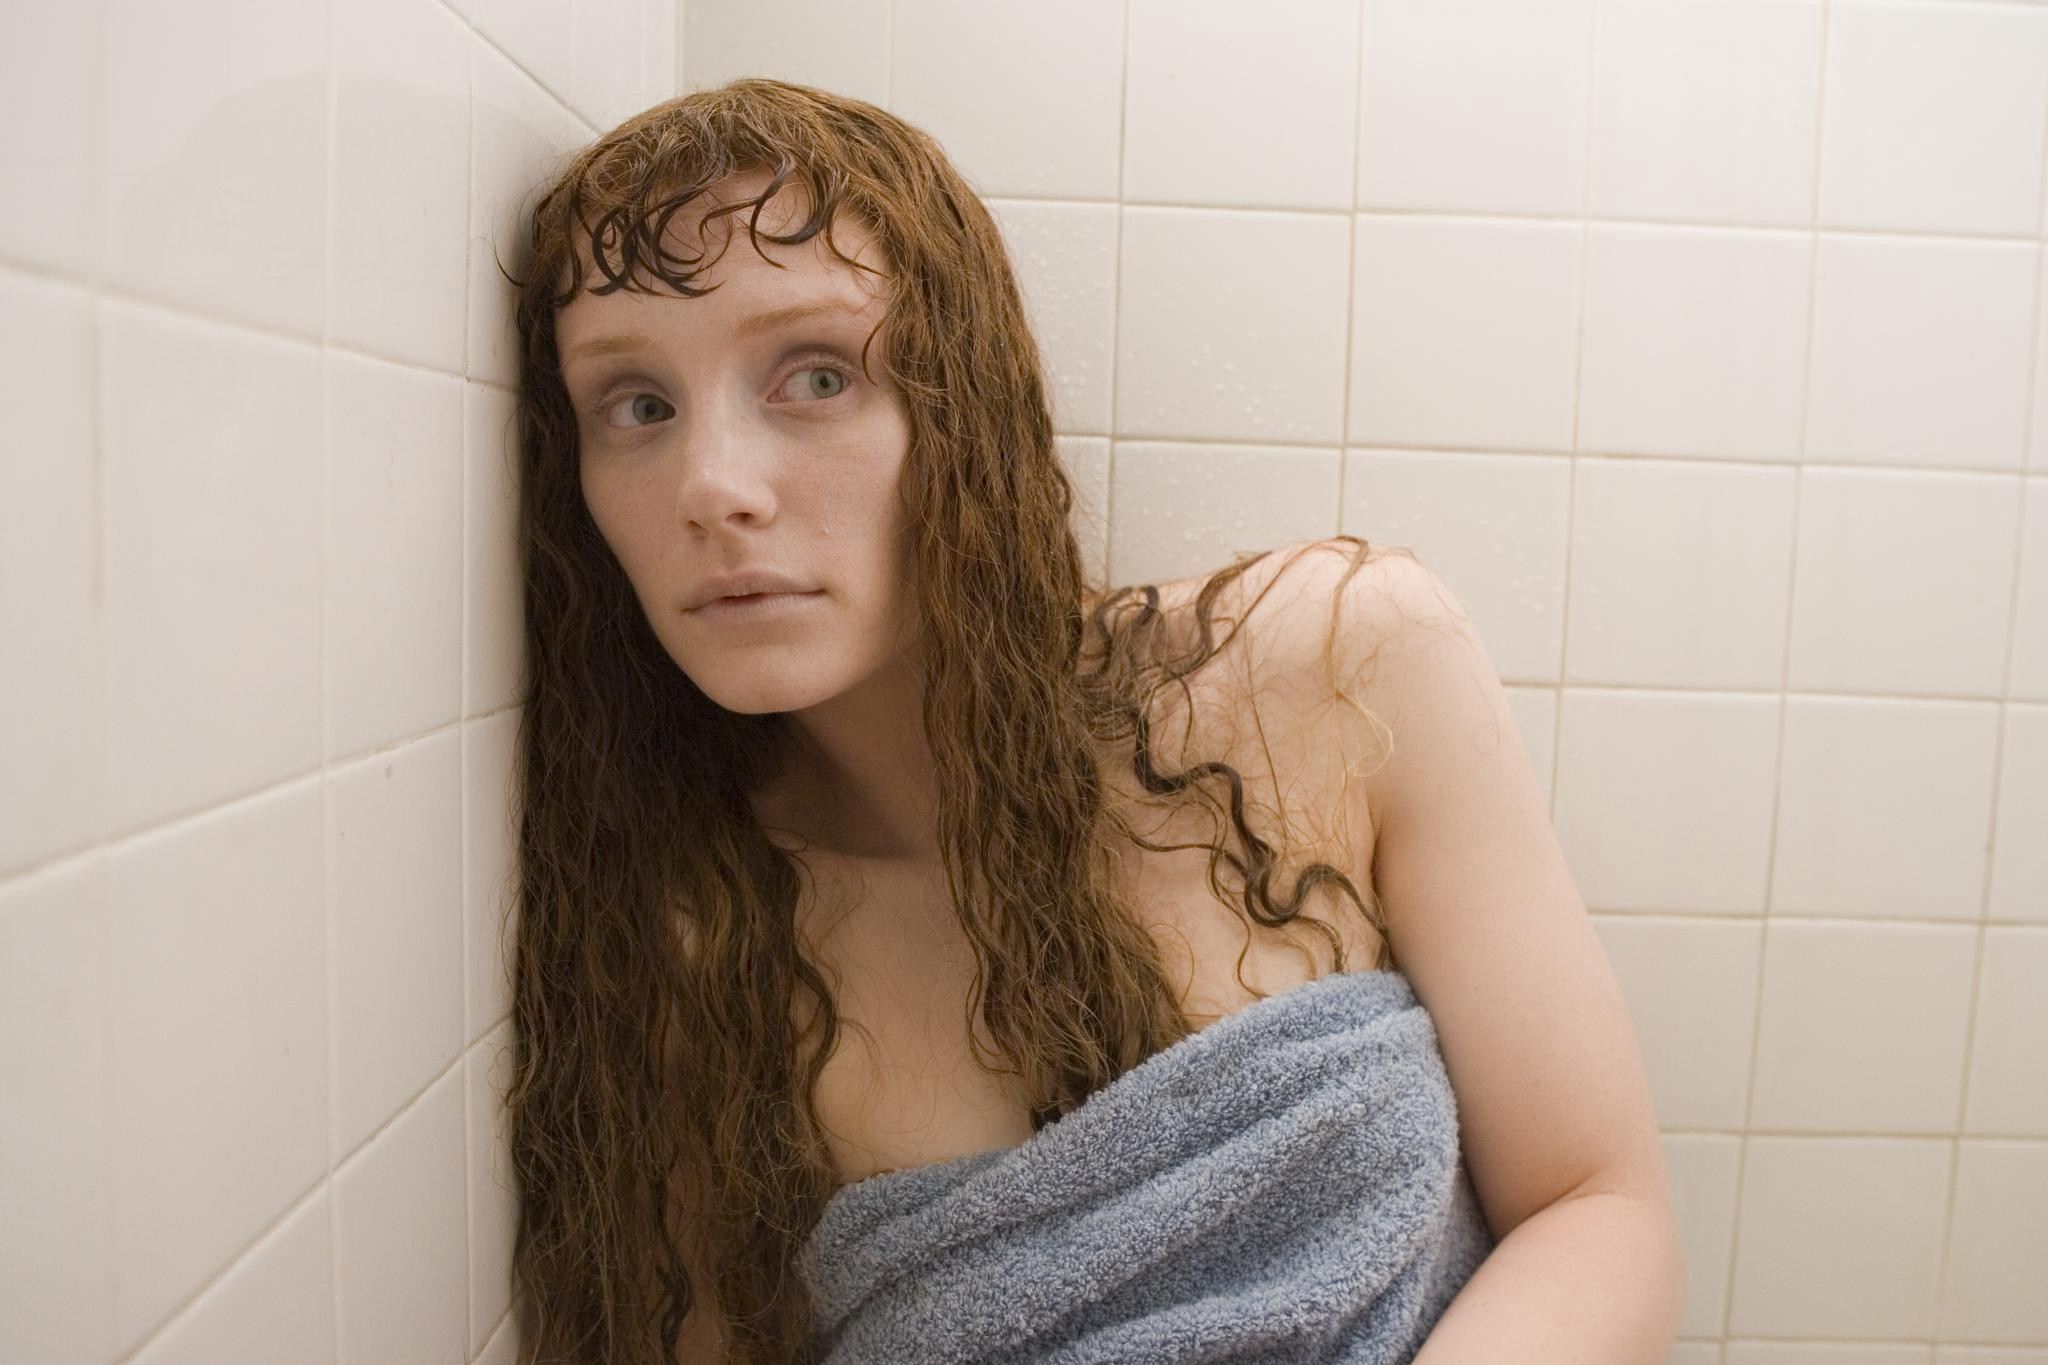 Lady in the Water Unpopular Movie Opinions That Shouldn't Be